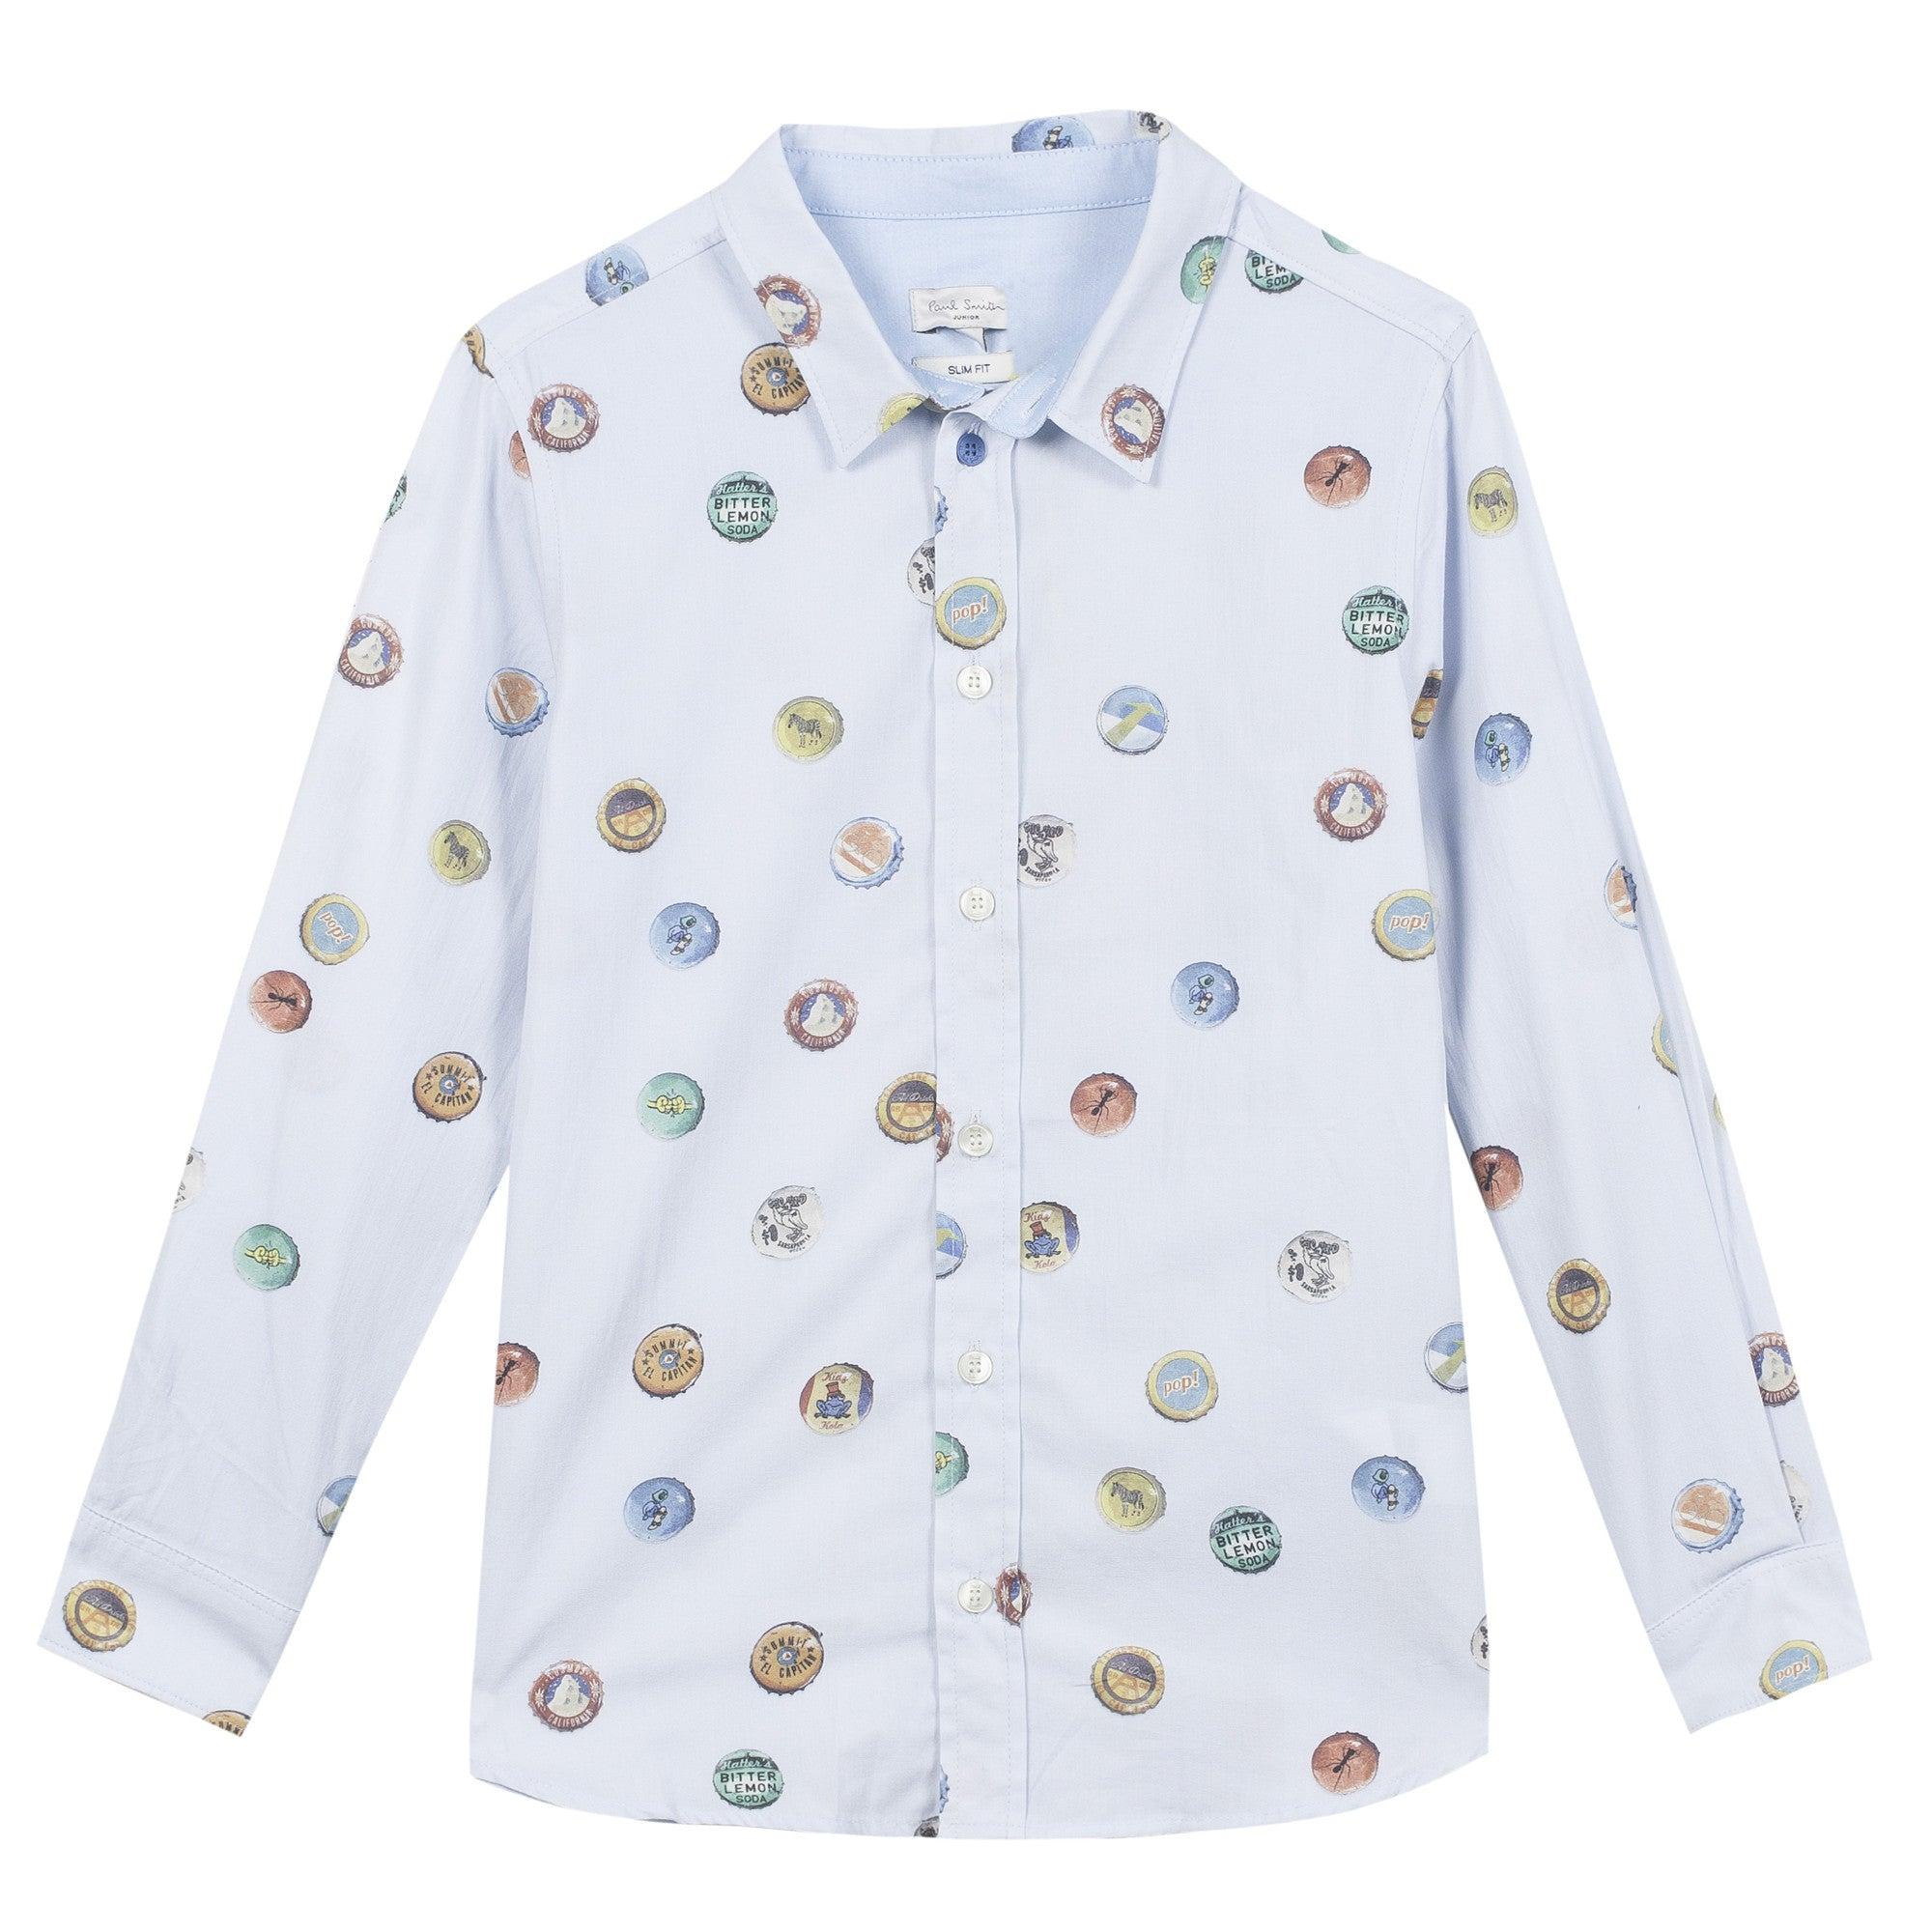 Paul Smith Sky Bottle Top Shir - Ladida